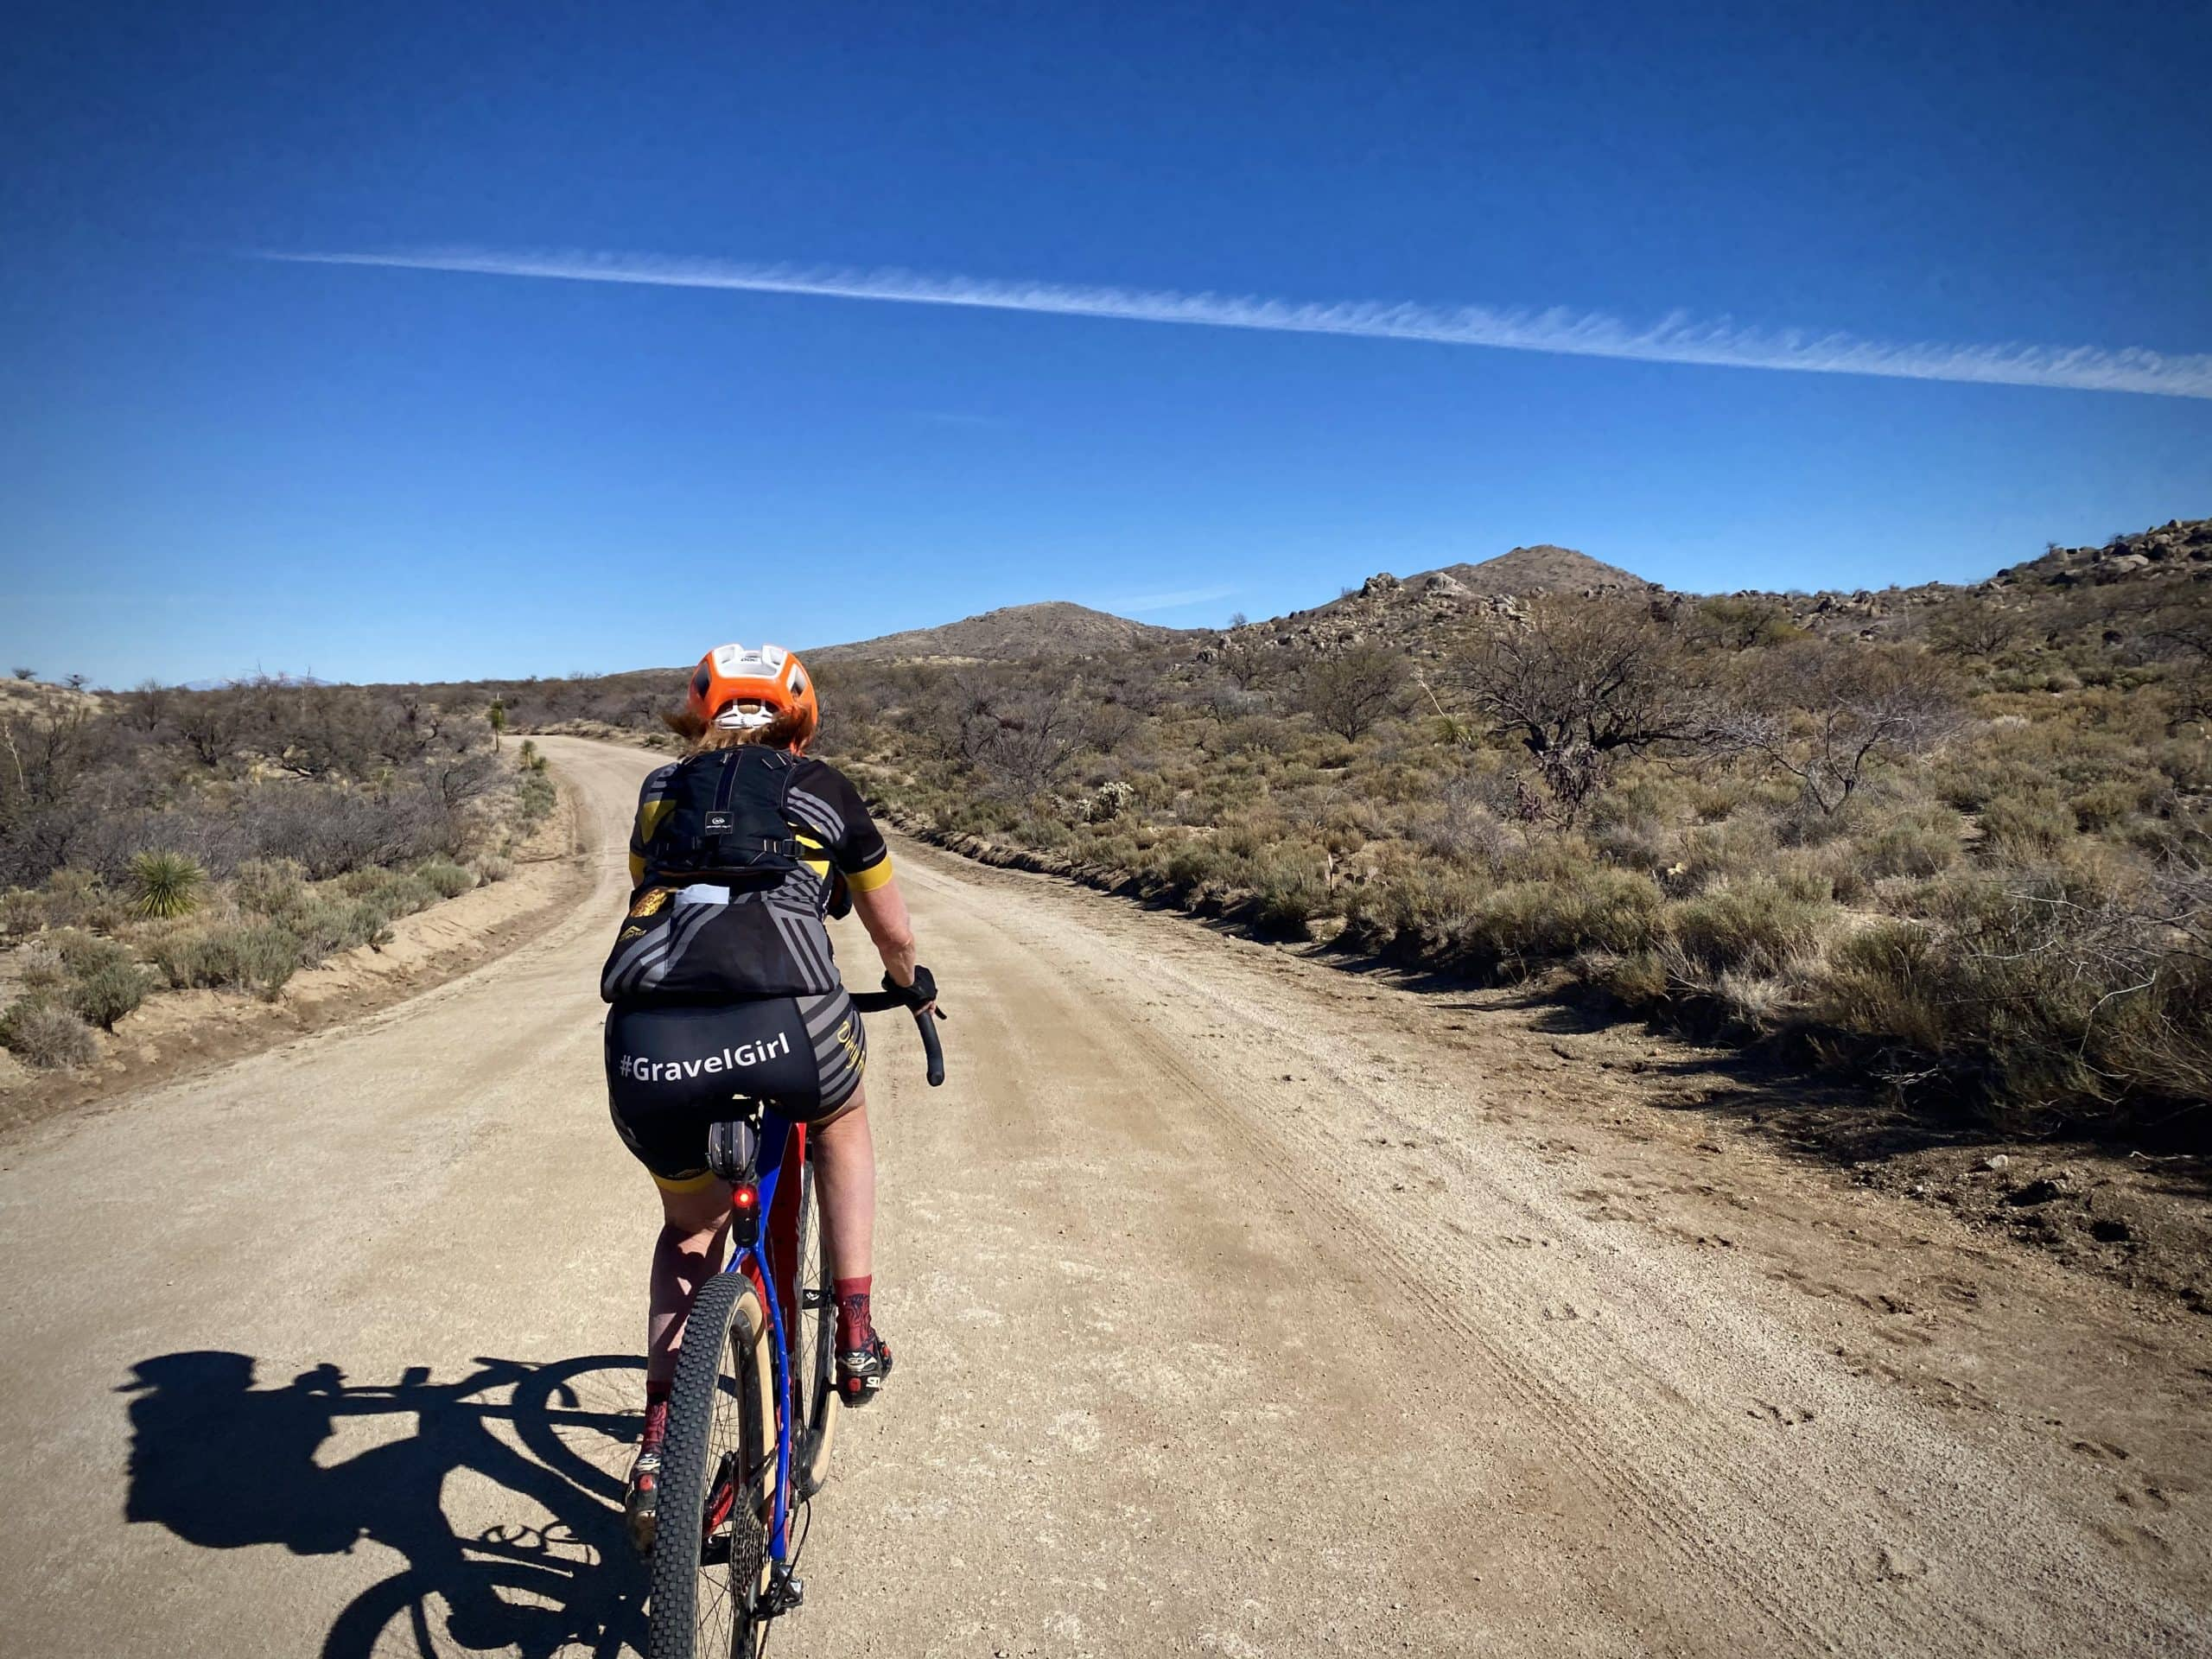 Gravel Girl on unpaved road with boulders in the background.